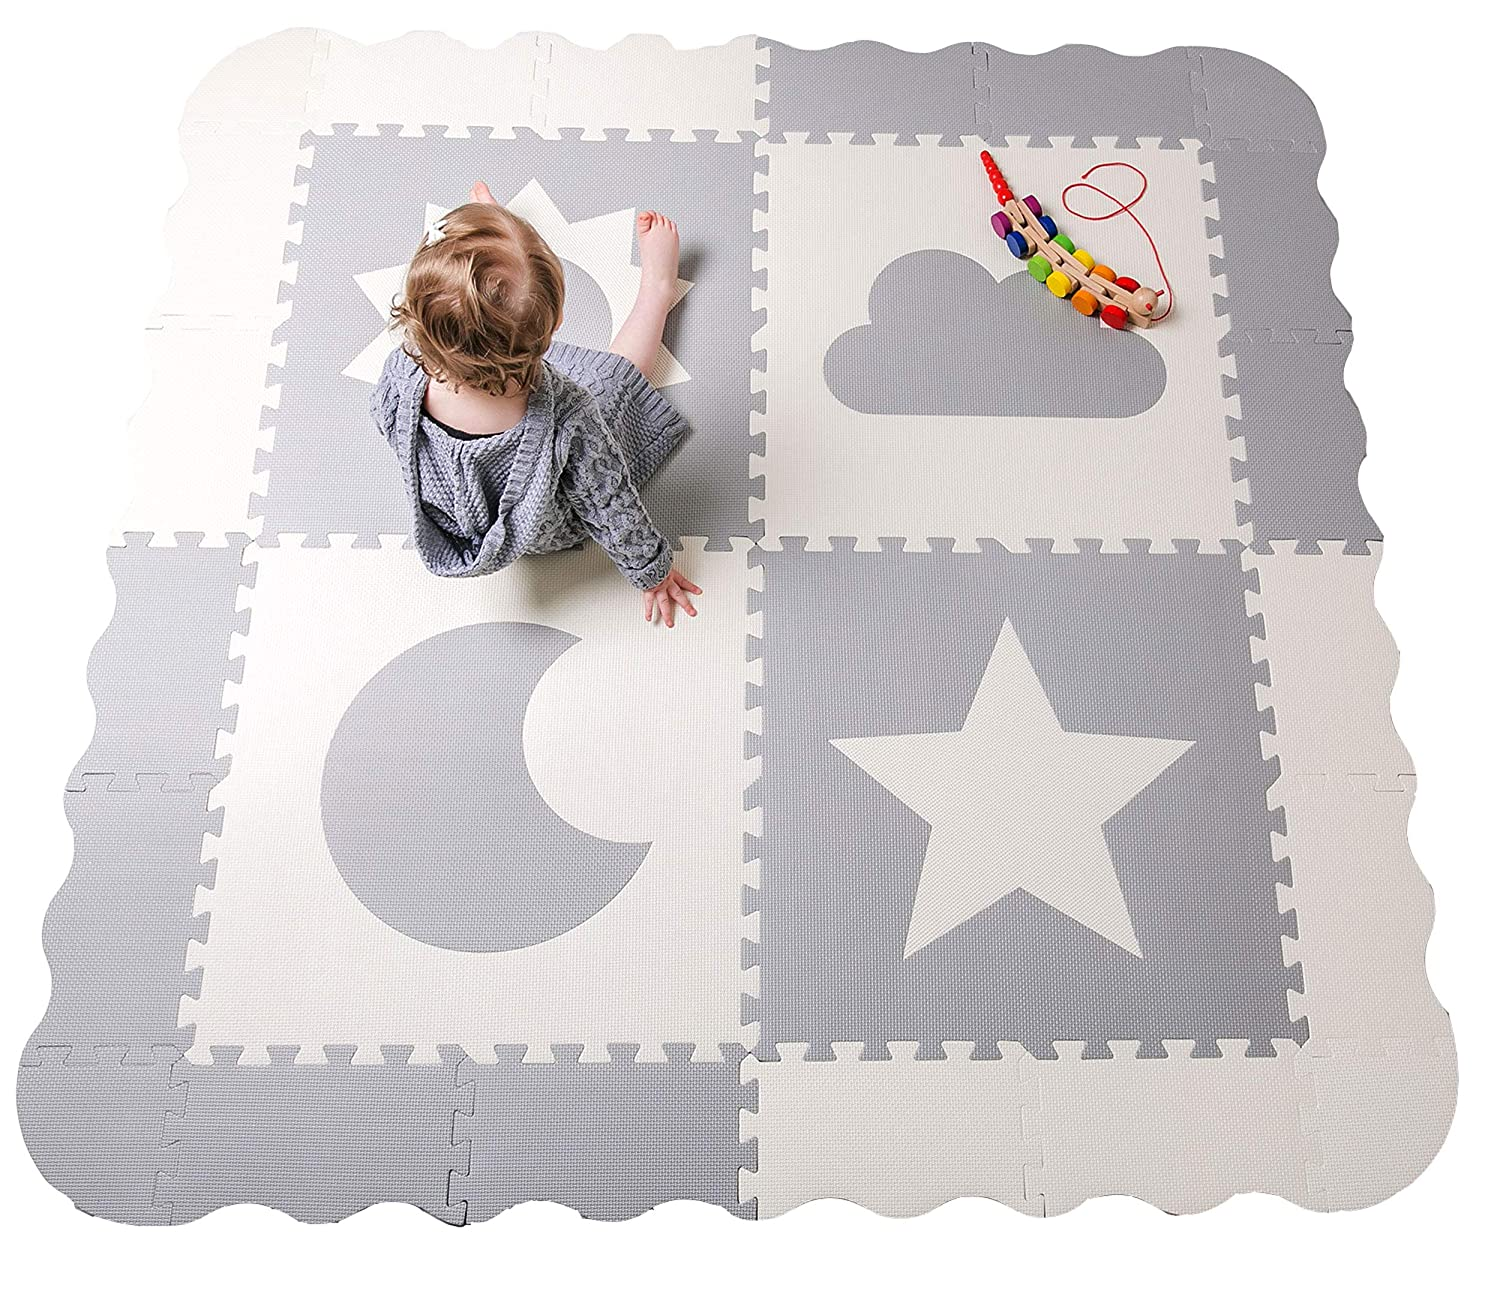 Baby Play Mat Tiles – 61 x 61 Extra Large, Non Toxic Foam Baby Floor Mat – Grey White Interlocking Playroom Nursery Playmat – Safe Protective for Infants Toddlers